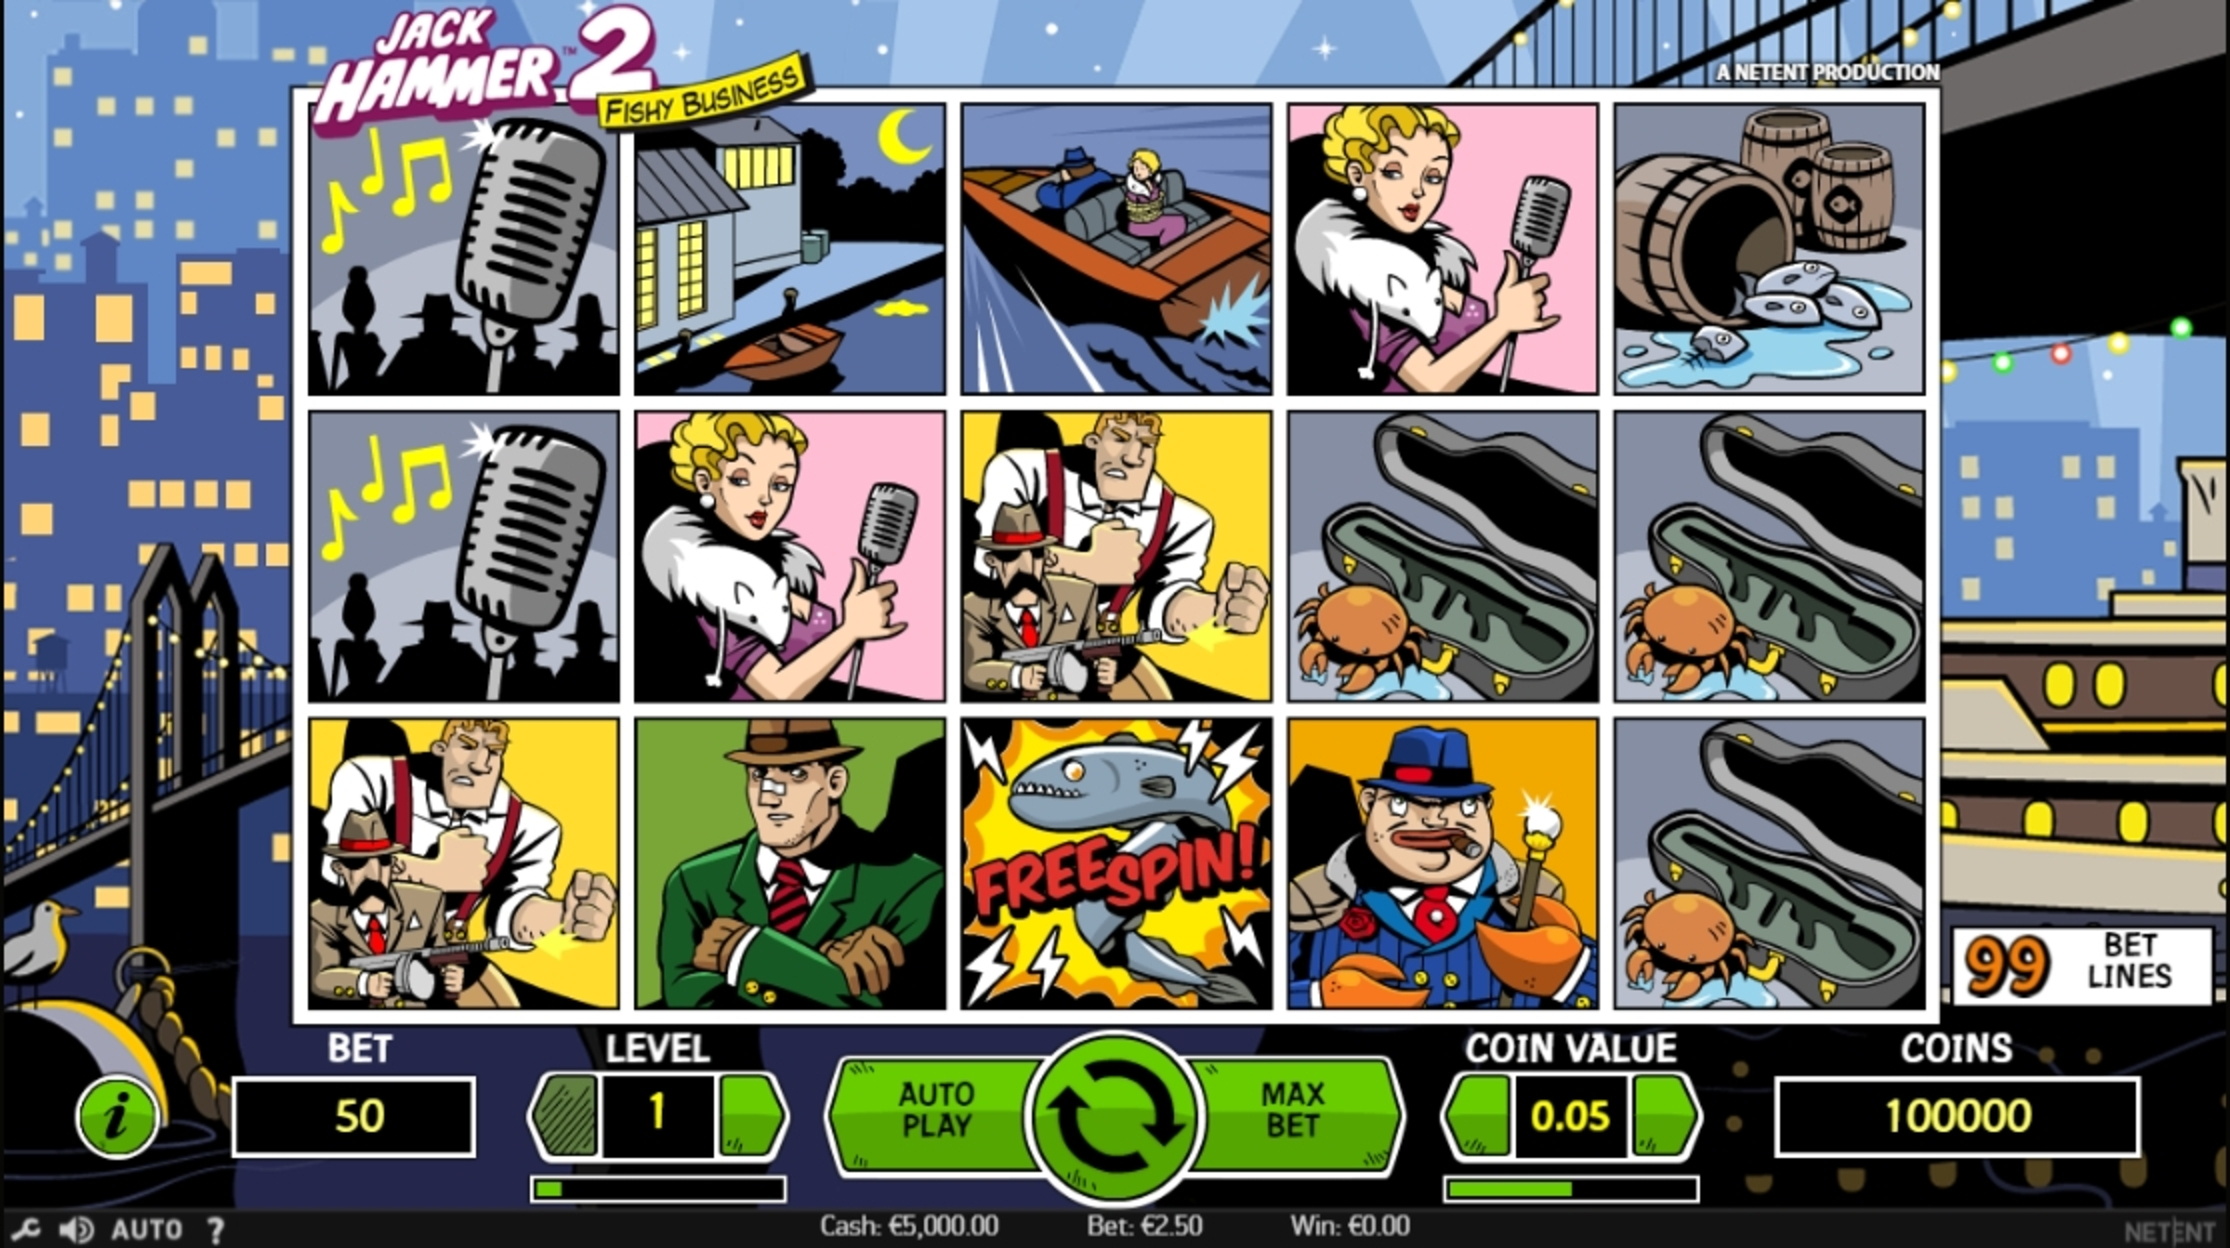 Reels in Jack Hammer 2 Slot Game by NetEnt